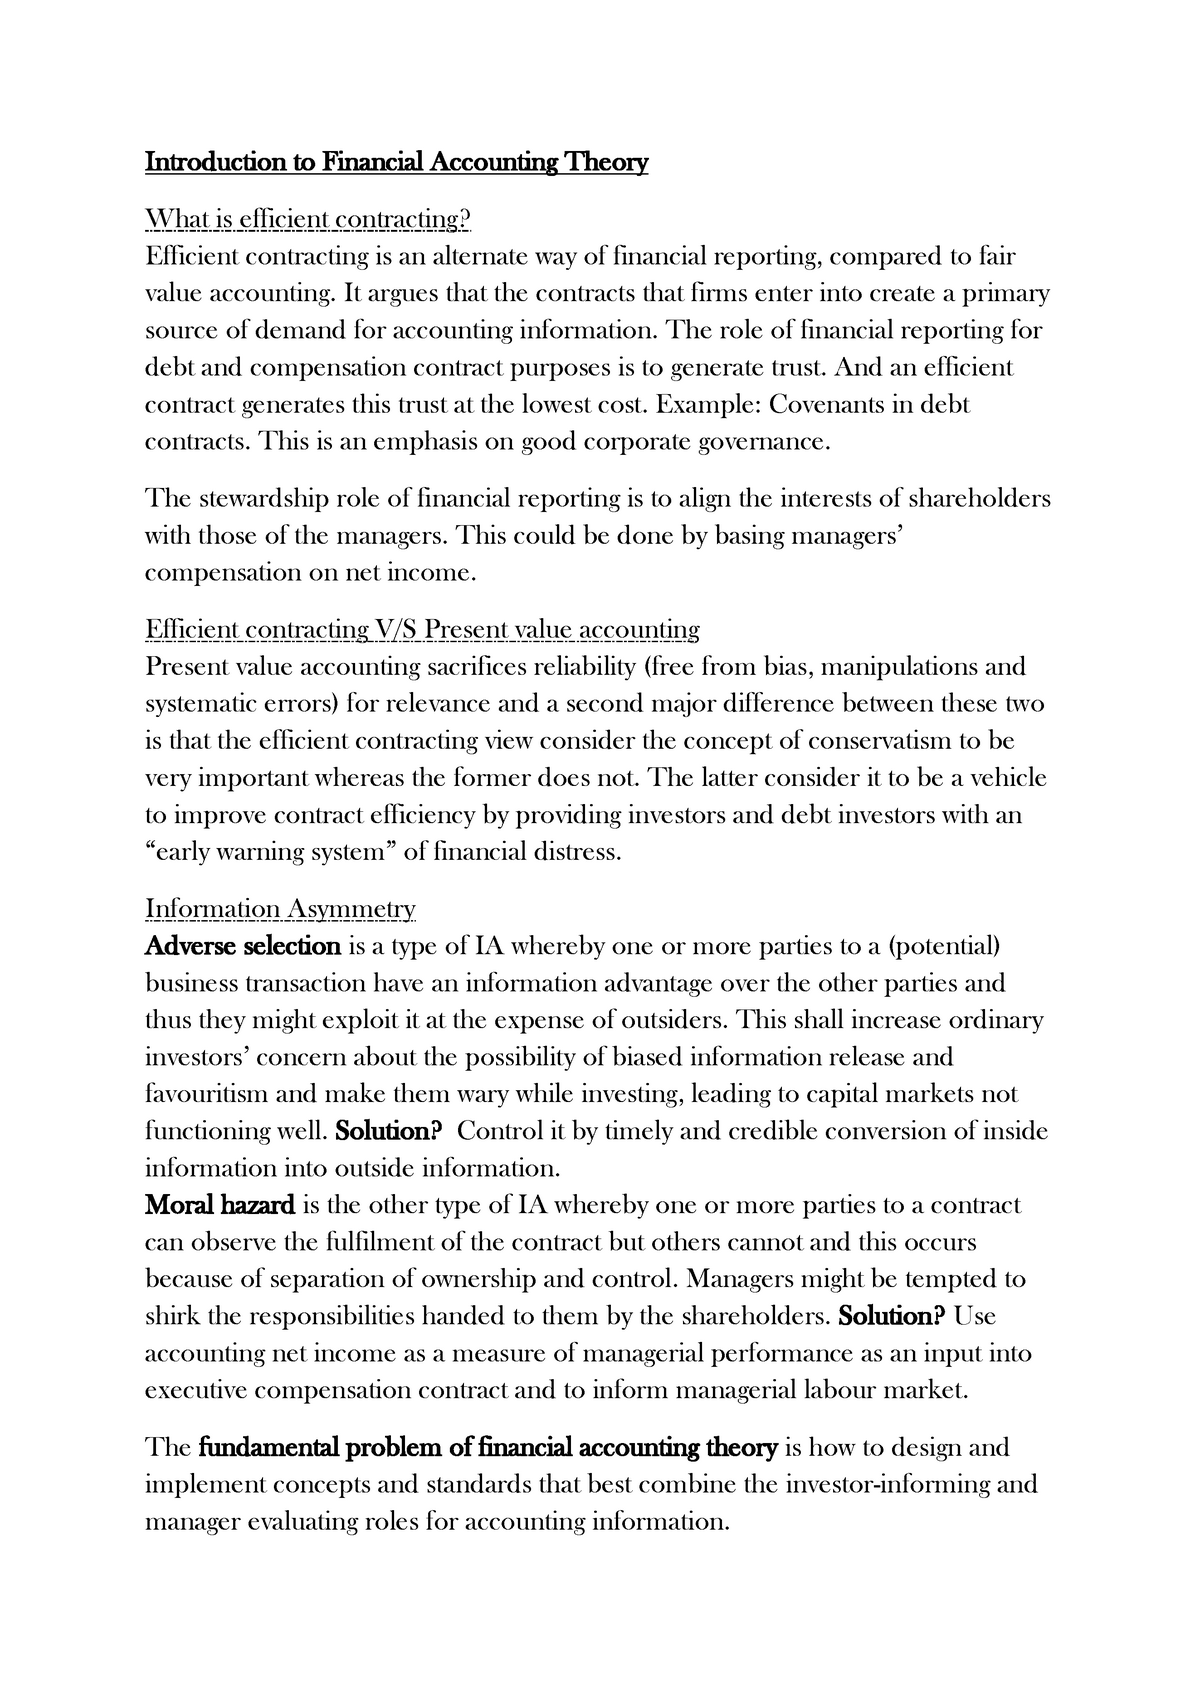 Lecture notes about Financial Accounting Theory pdf - StuDocu